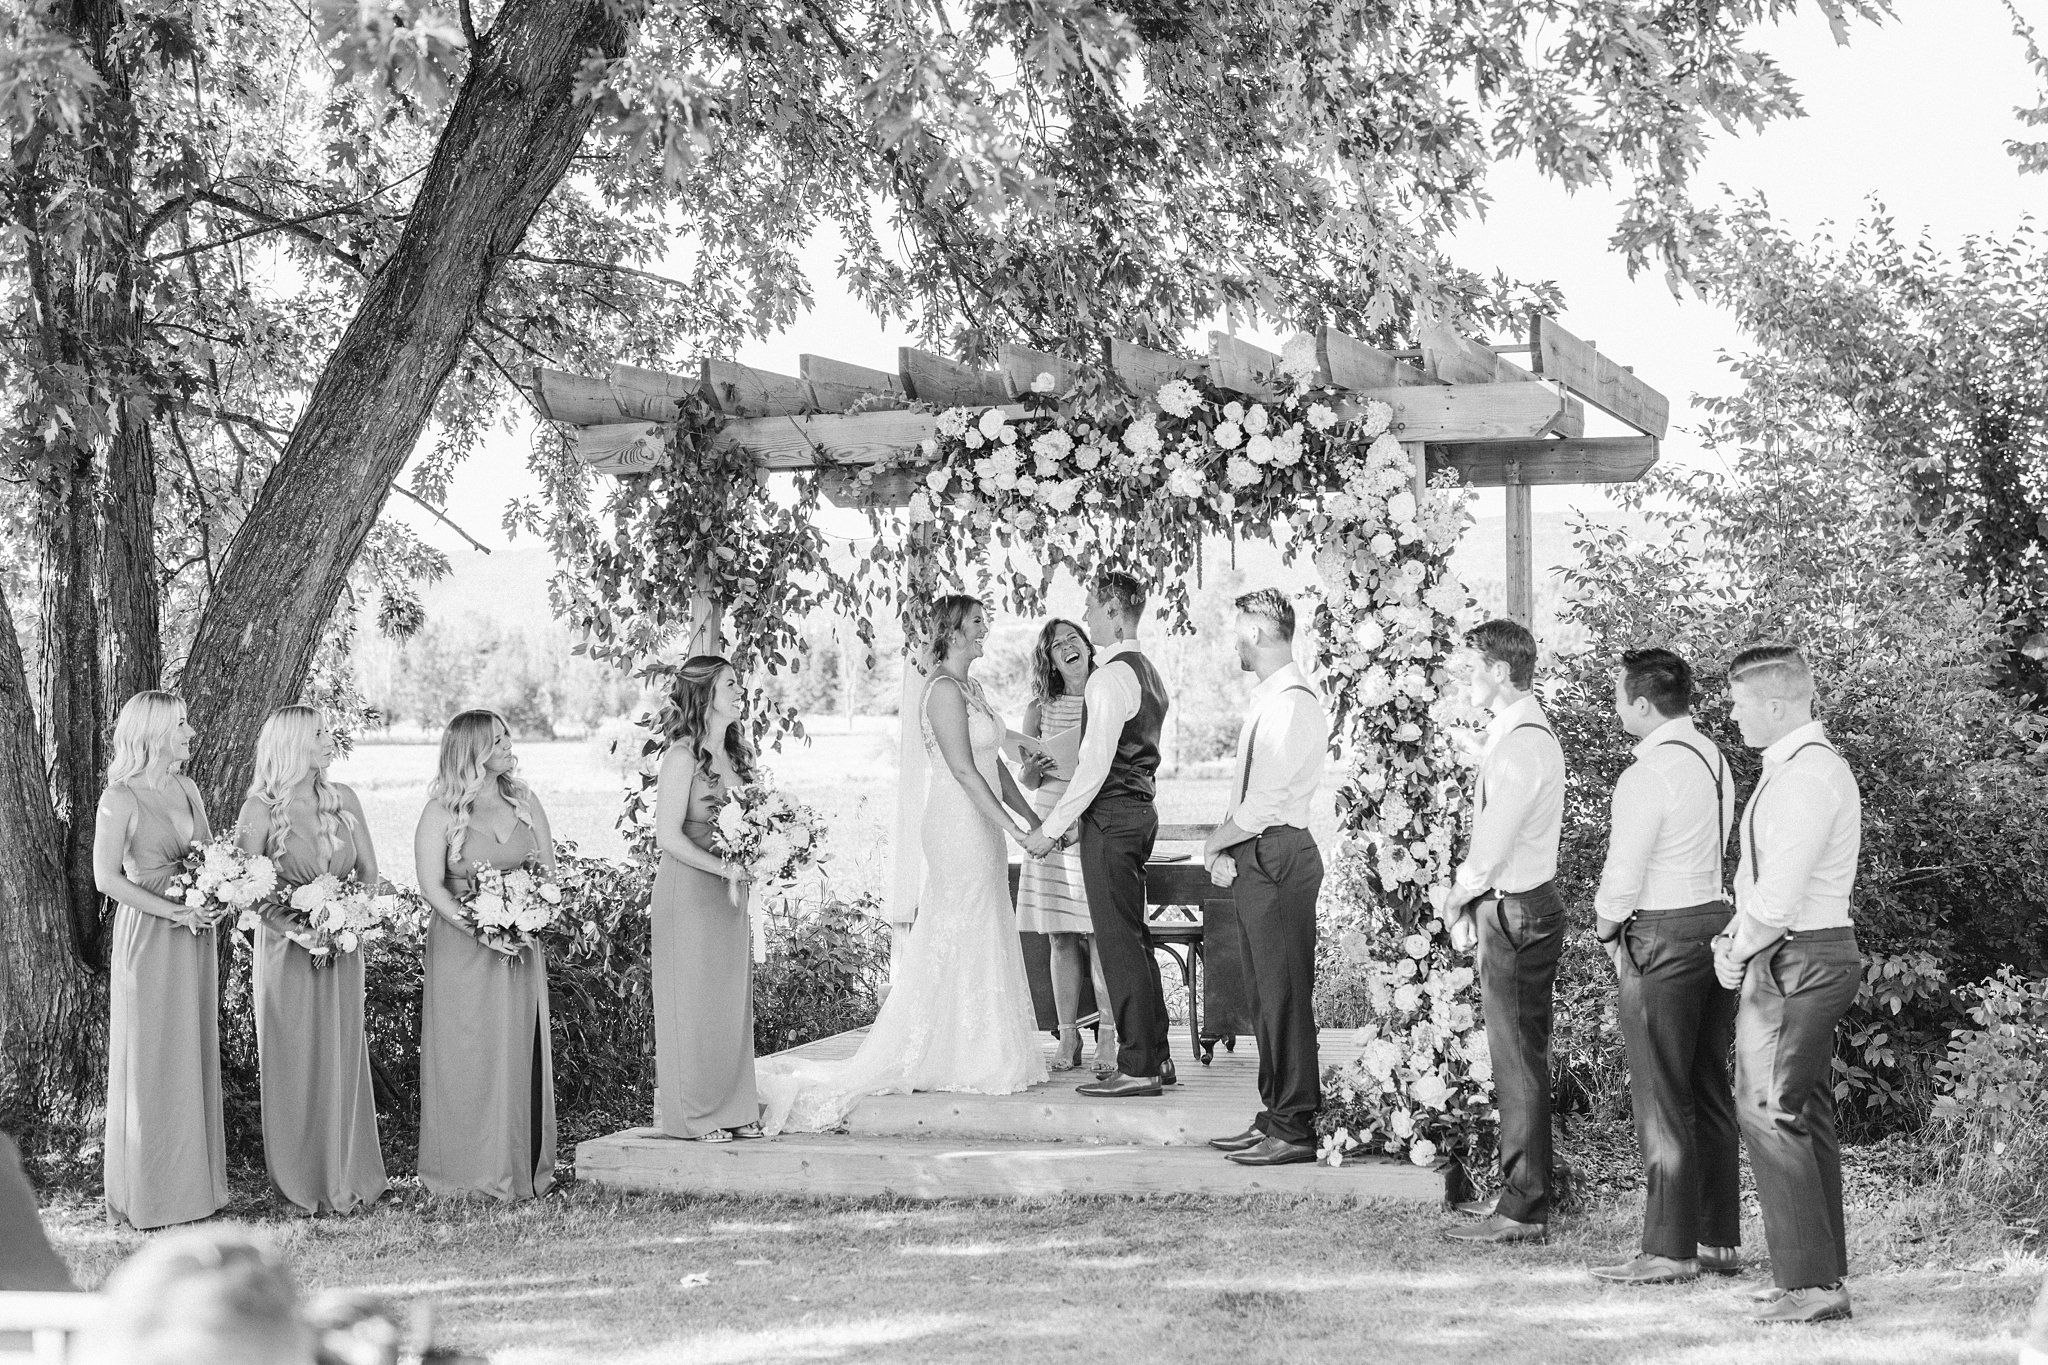 Outdoor ceremony, Private Estate Wedding Photos, Amy Pinder Photography